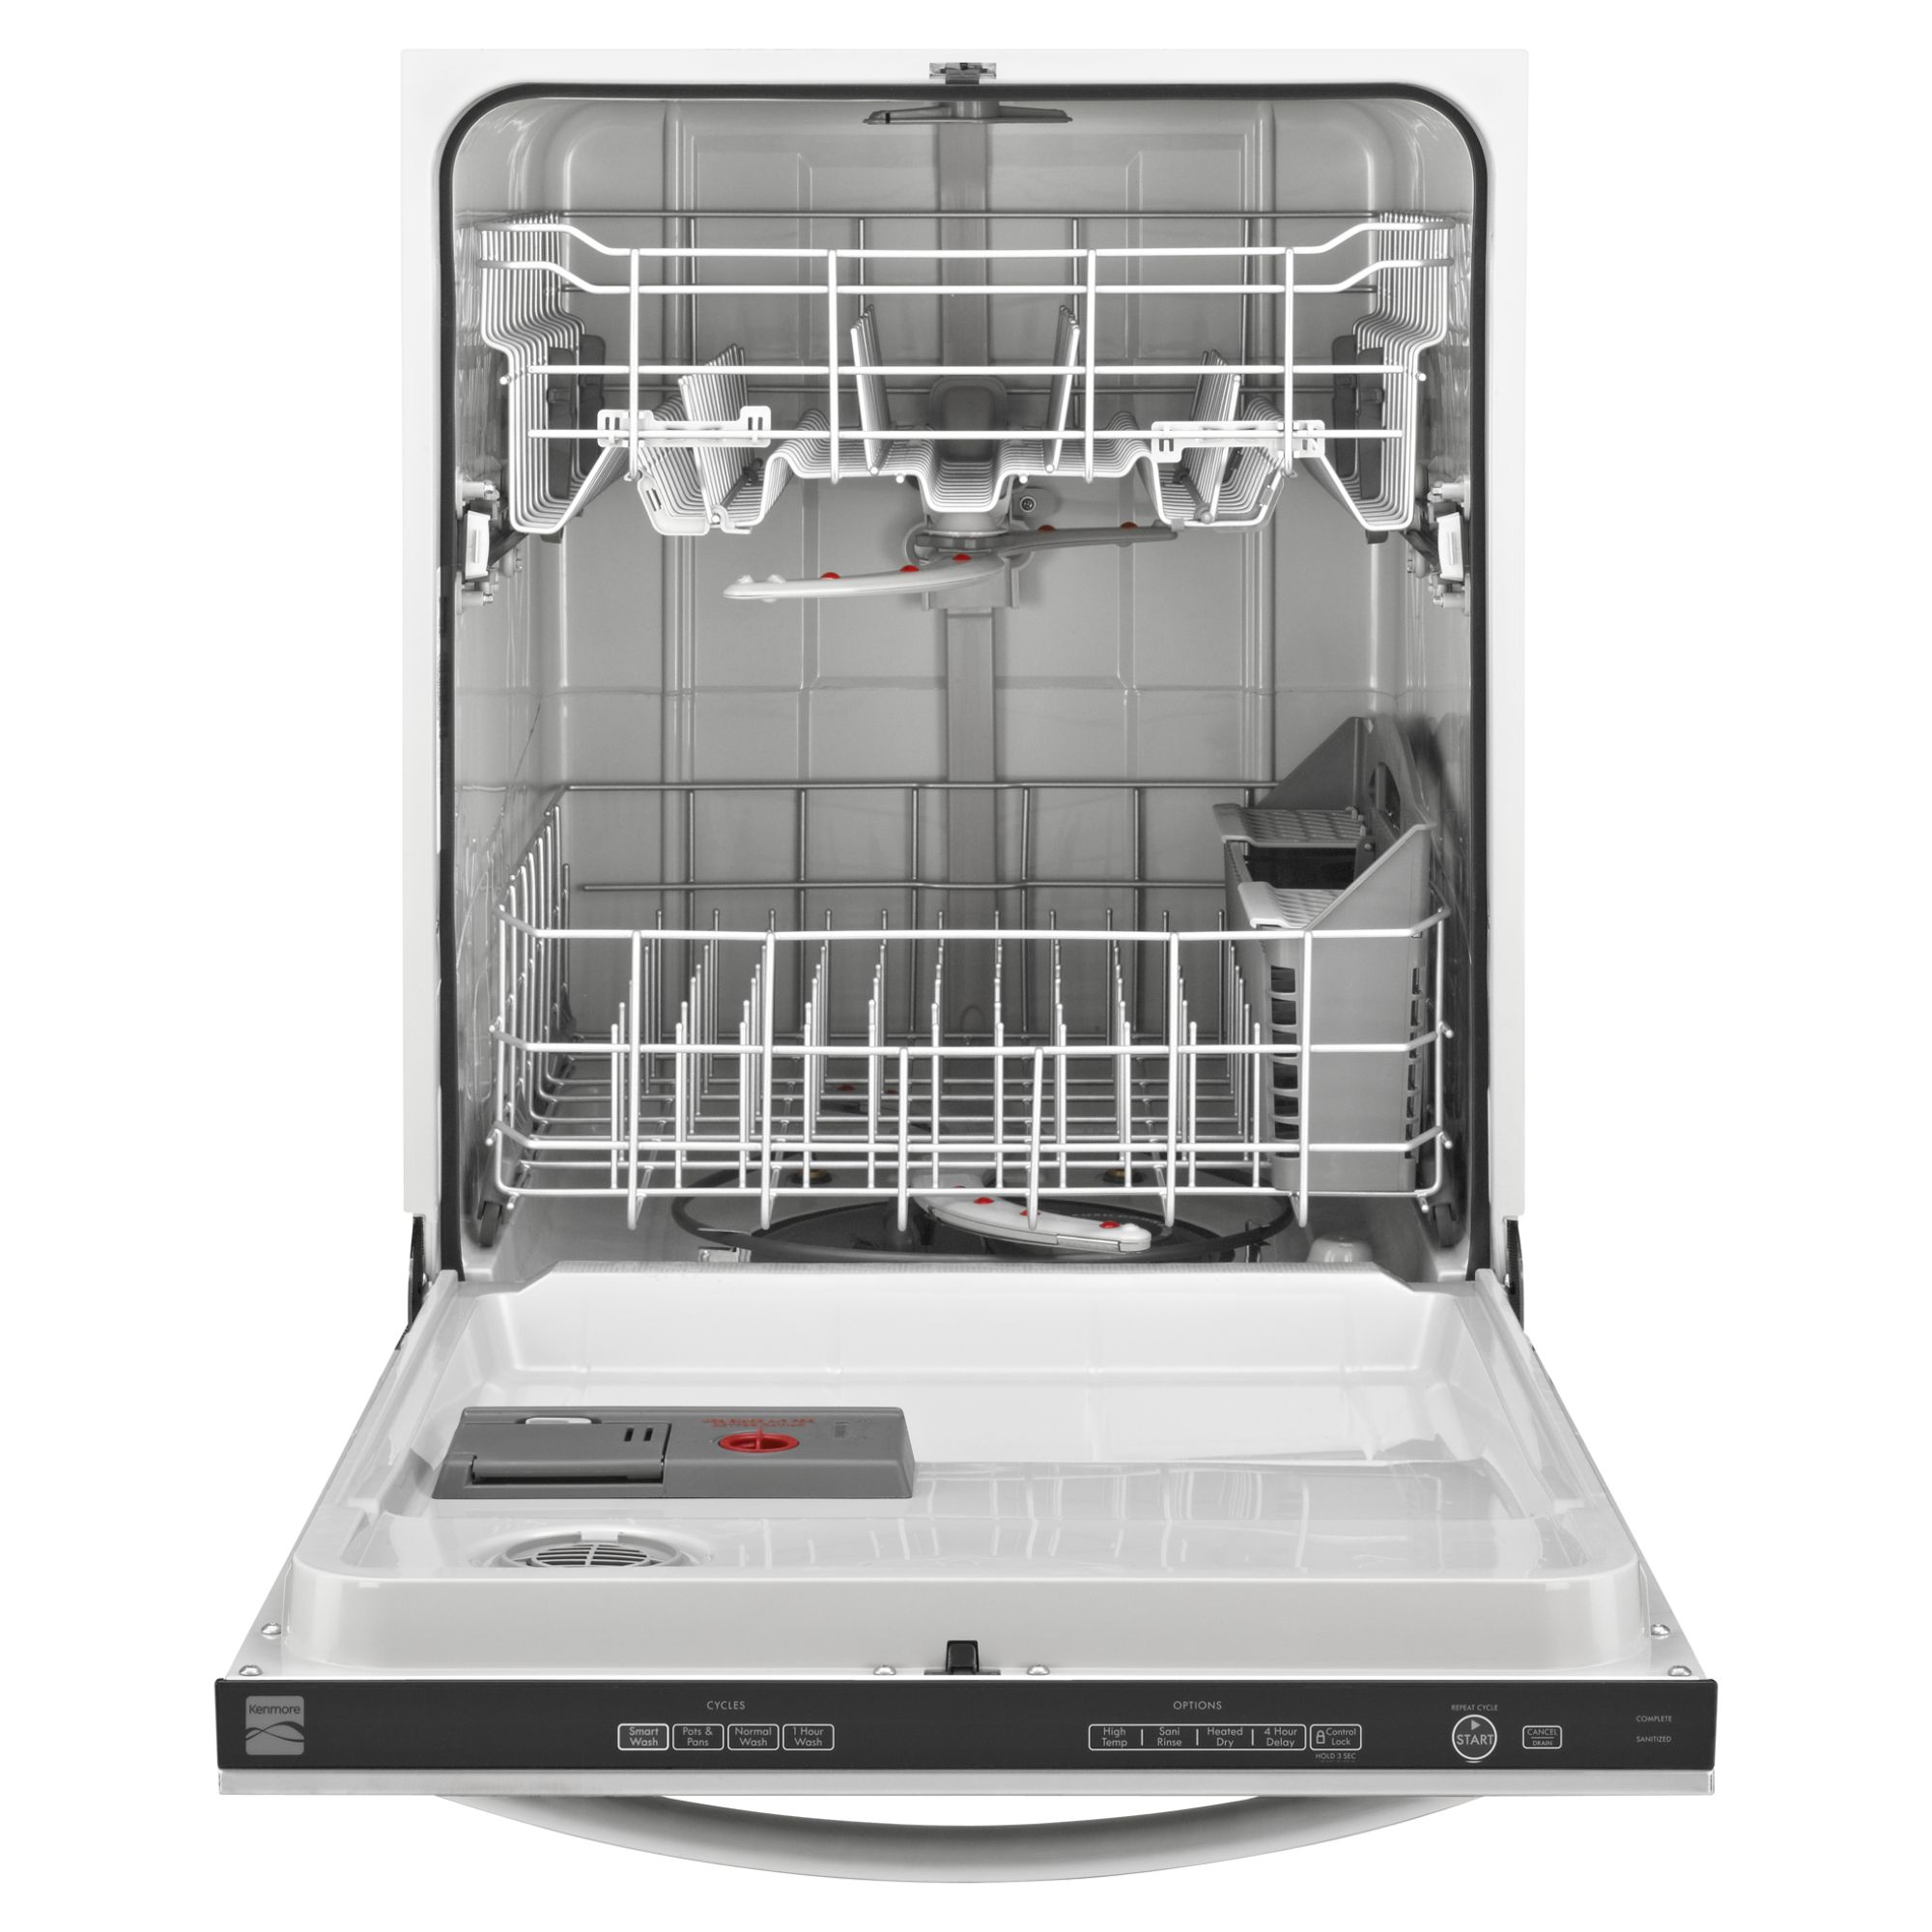 "Kenmore 24"" Built-In Dishwasher - Stainless Steel"